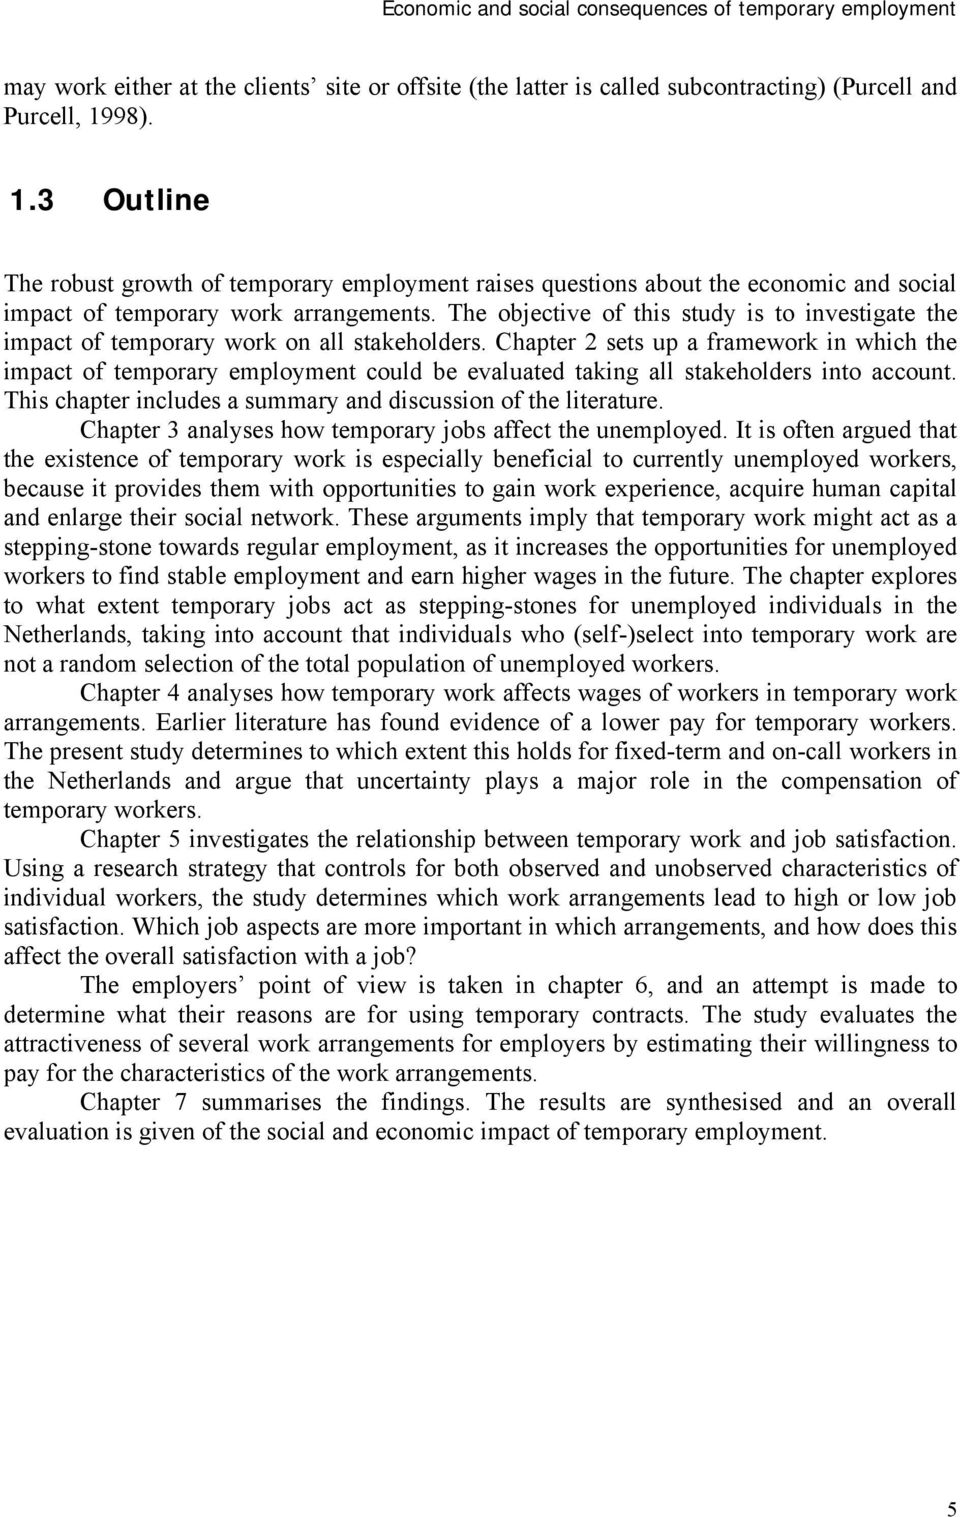 The objective of this study is to investigate the impact of temporary work on all stakeholders.